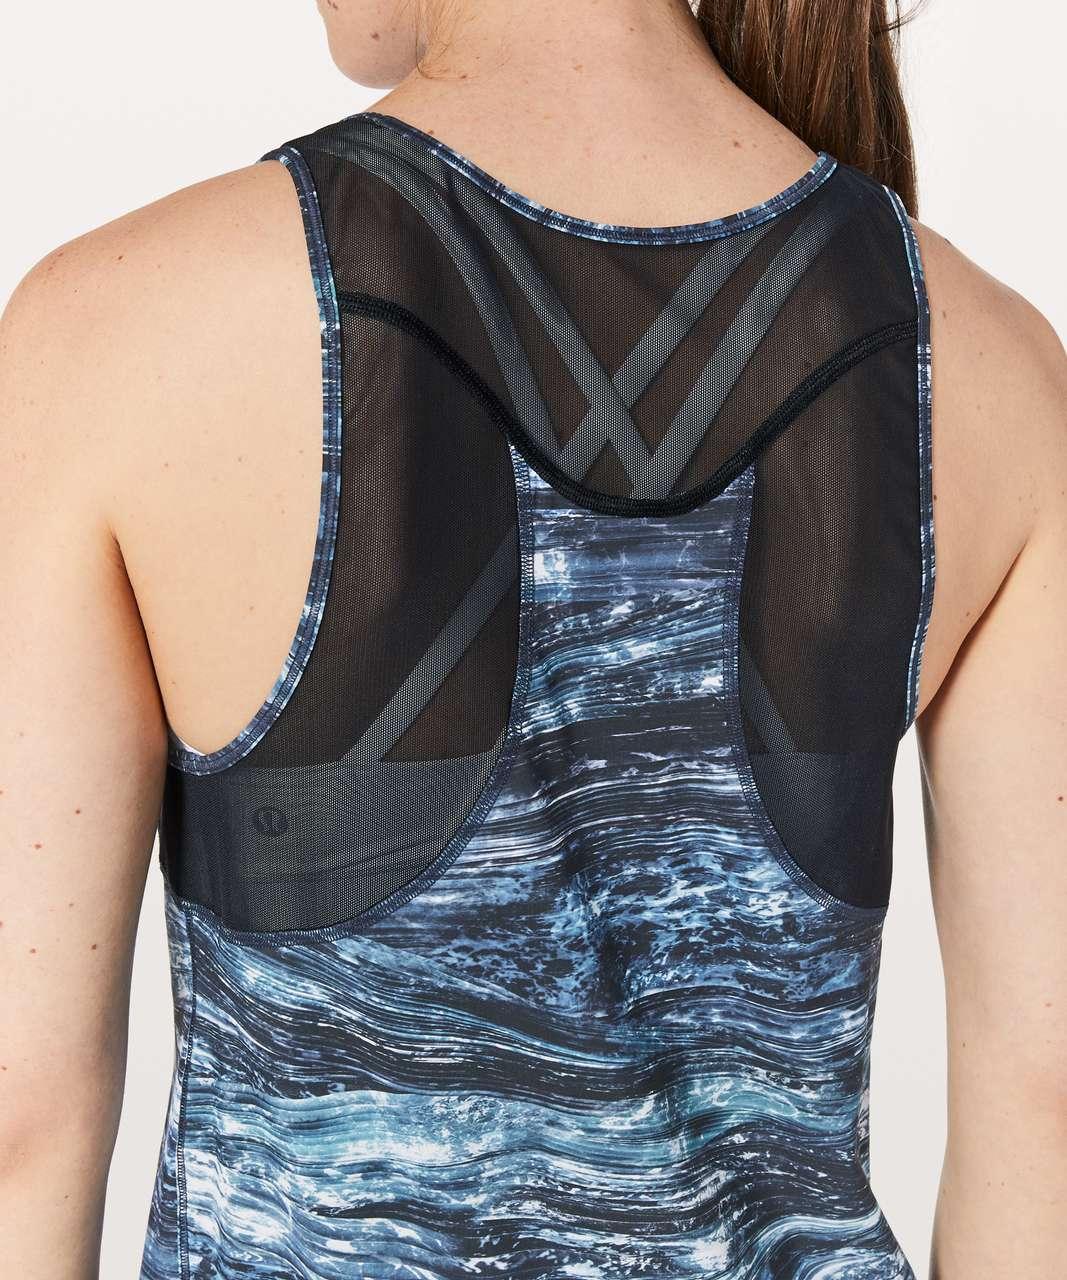 Lululemon Sculpt Tank II - Shorelines Multi Blue / Black